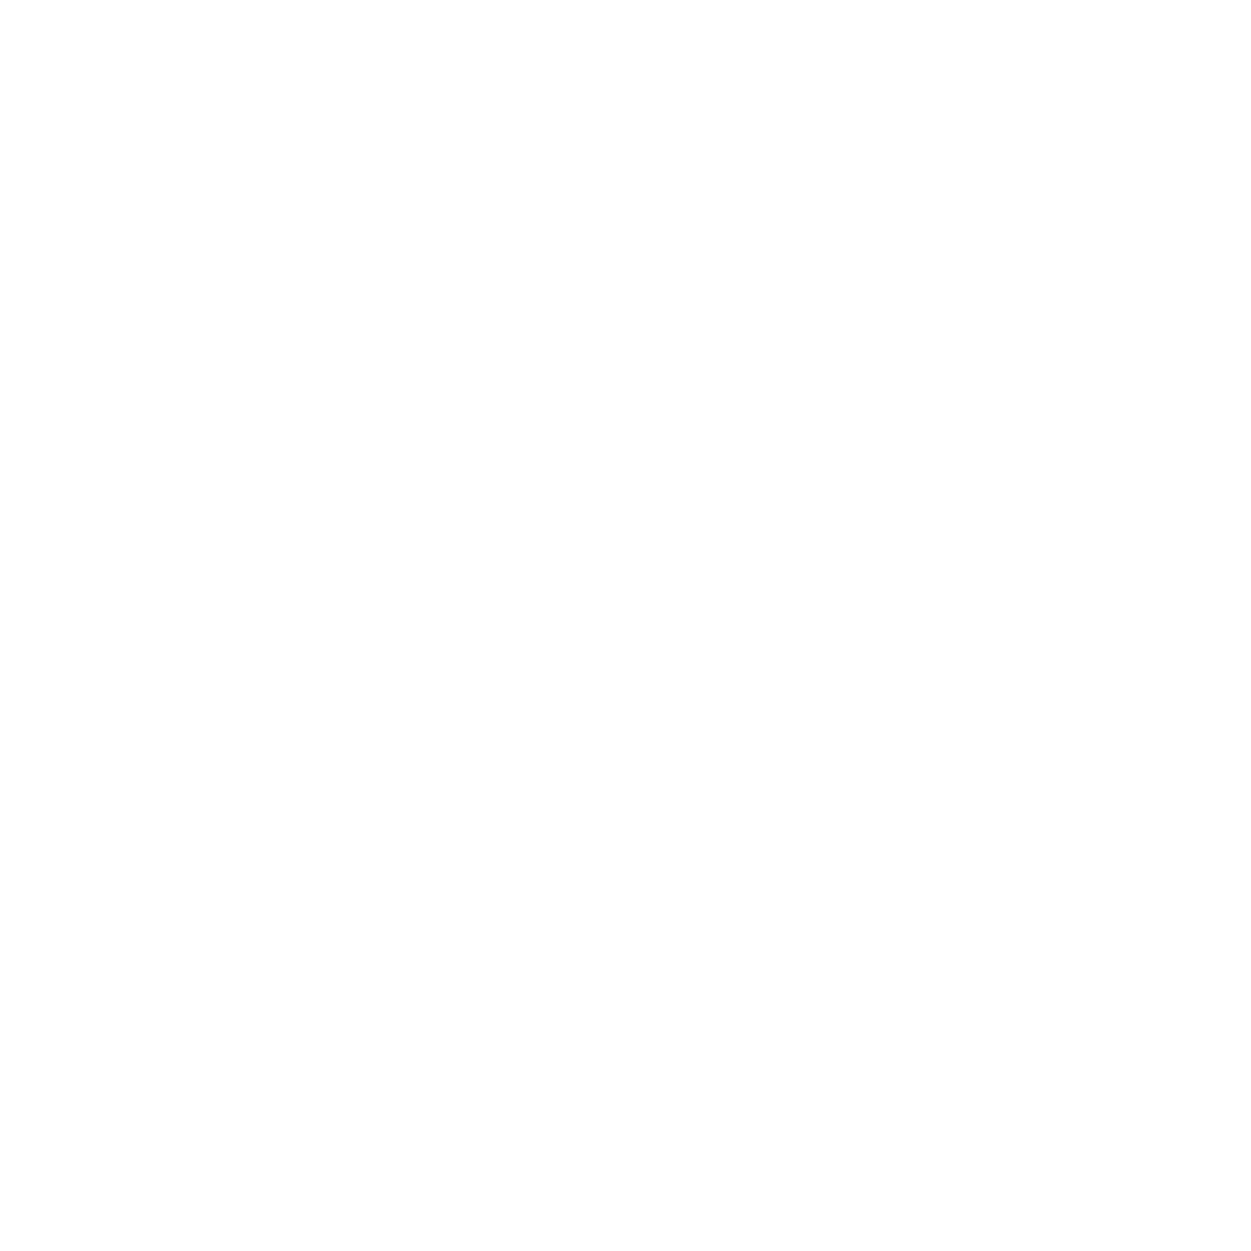 State of Alaska Aging and Disability Resource Centers